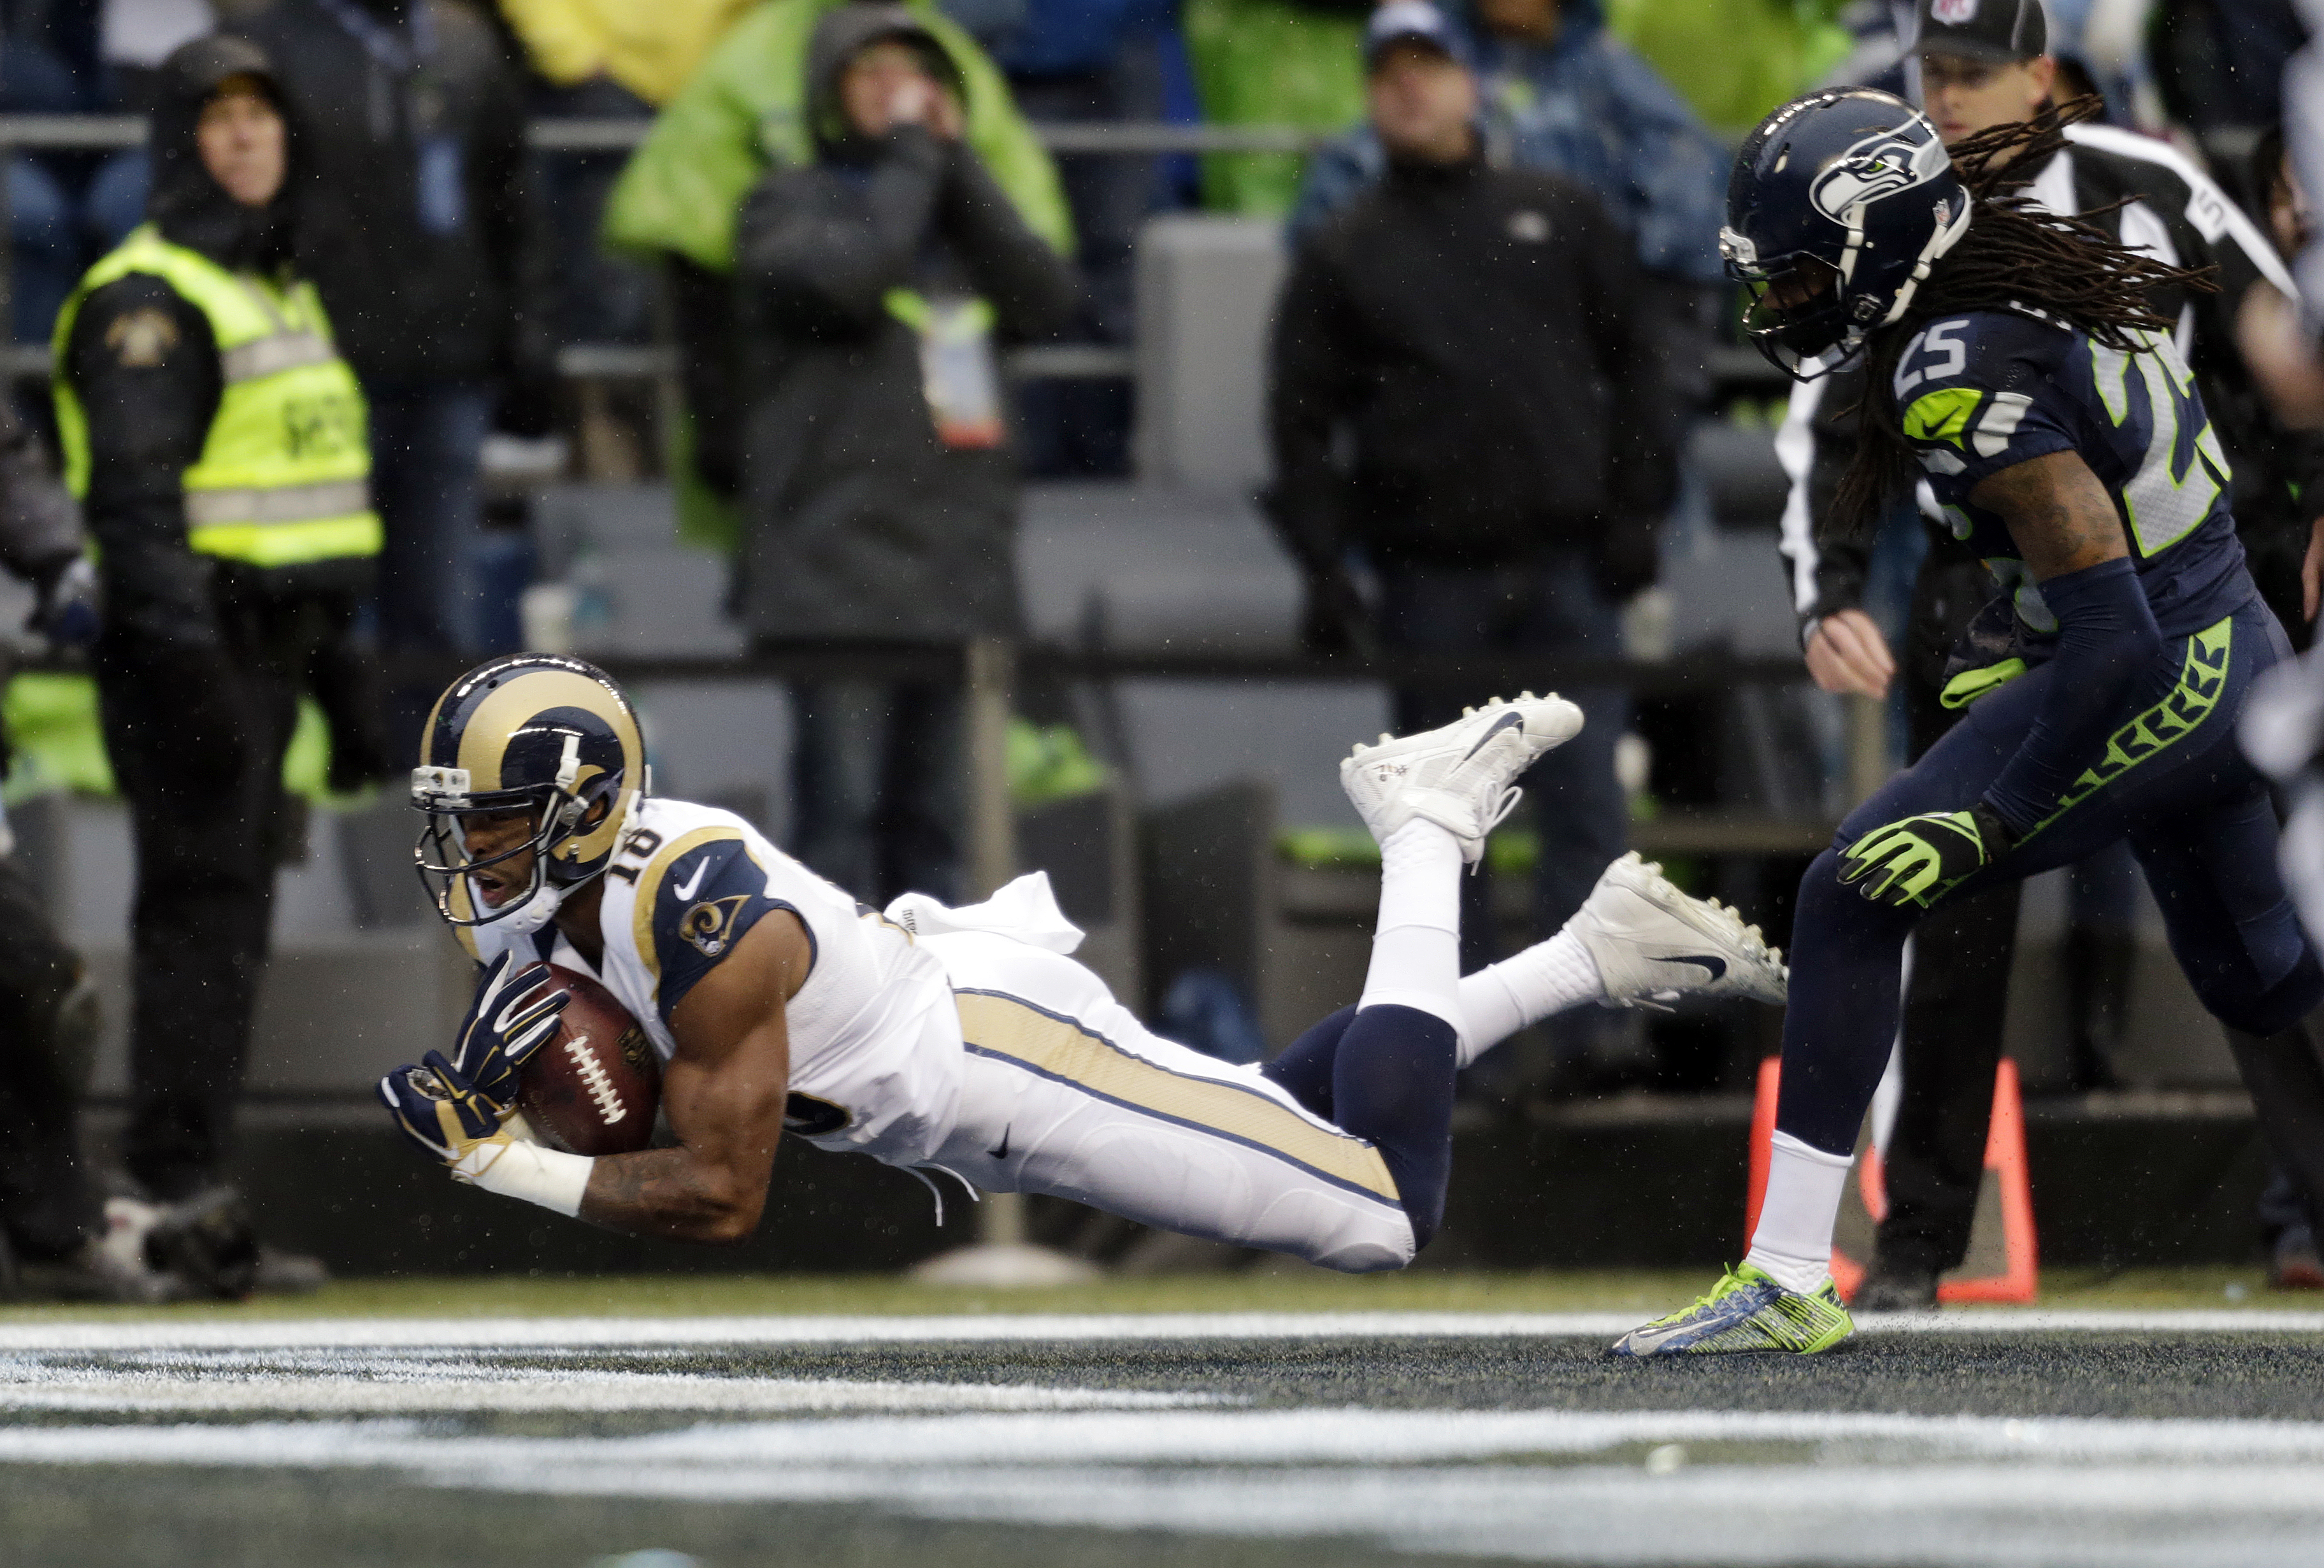 St. Louis Rams' Kenny Britt, left, dives into the end zone on a touchdown reception as Seattle Seahawks' Richard Sherman follows in the first half of an NFL football game, Sunday, Dec. 27, 2015, in Seattle. (AP Photo/John Froschauer)